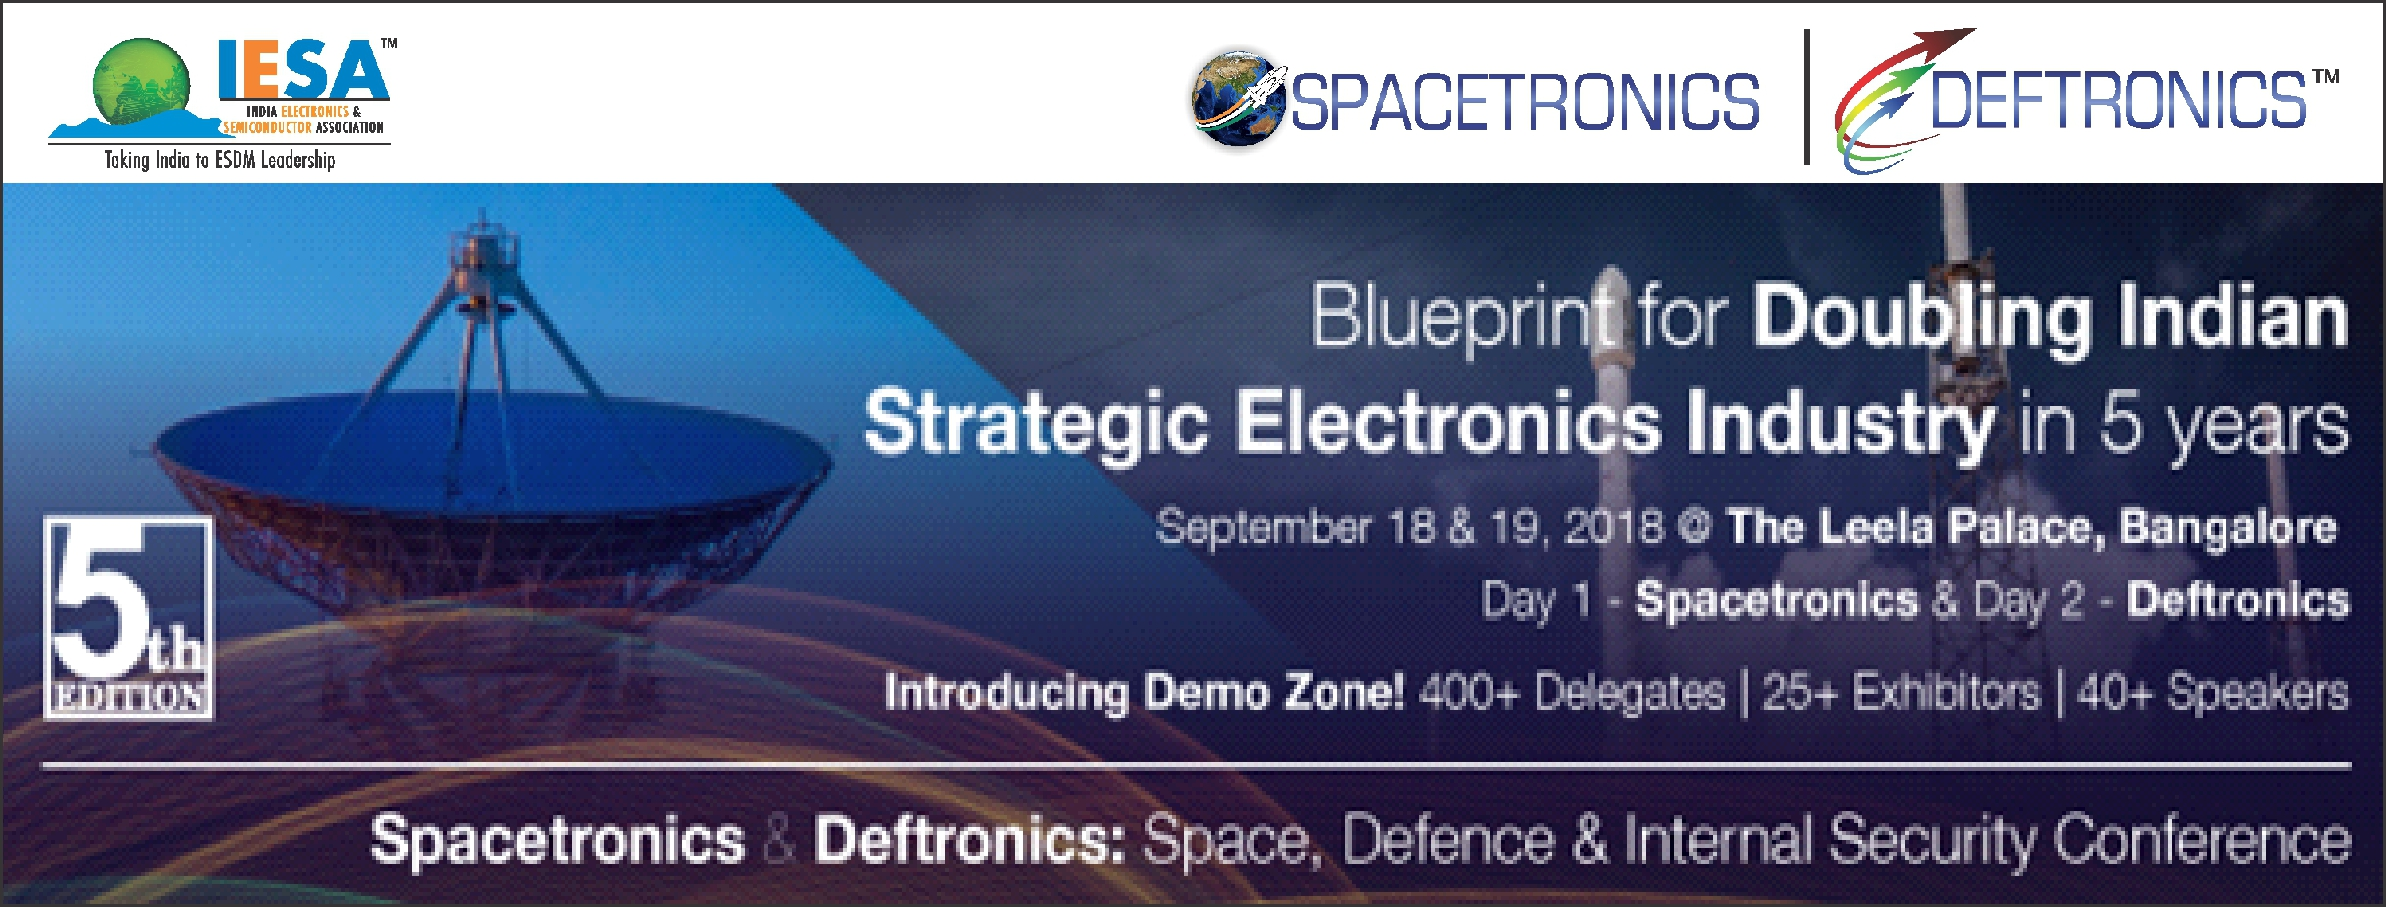 SPACETRONICS & DEFTRONICS 2018